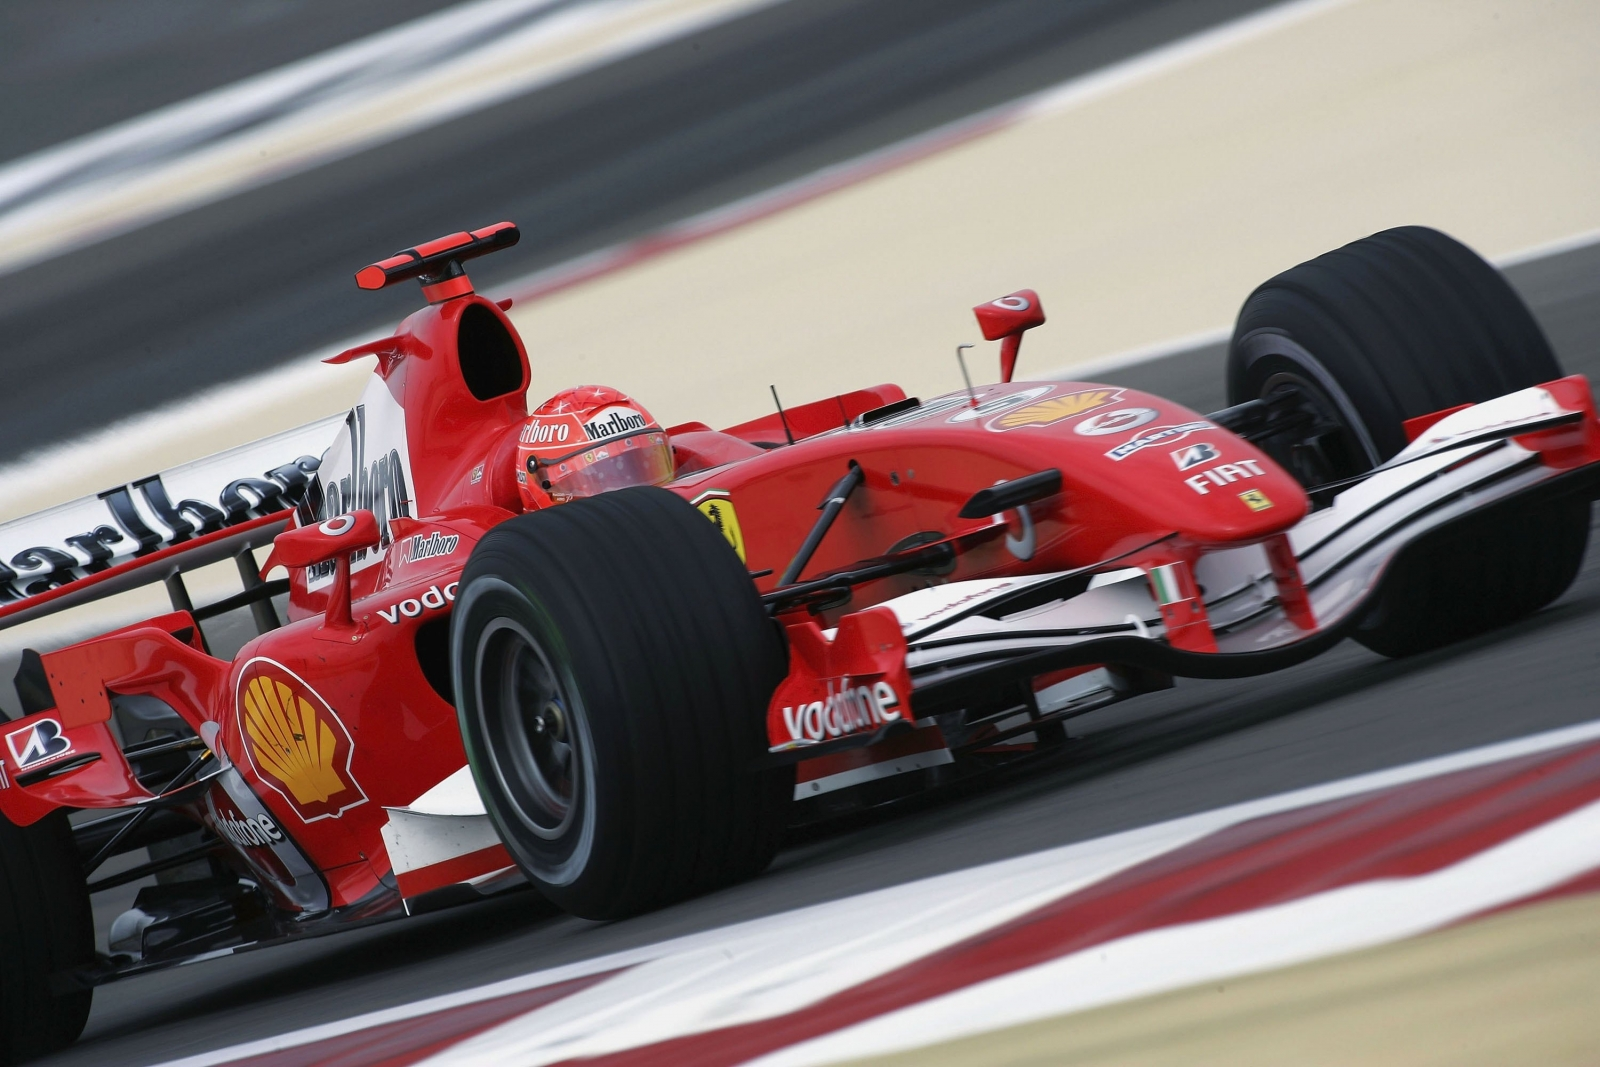 This Ferrari driven by Michael Schumacher in 2006 is up for sale for a cool $3.3m